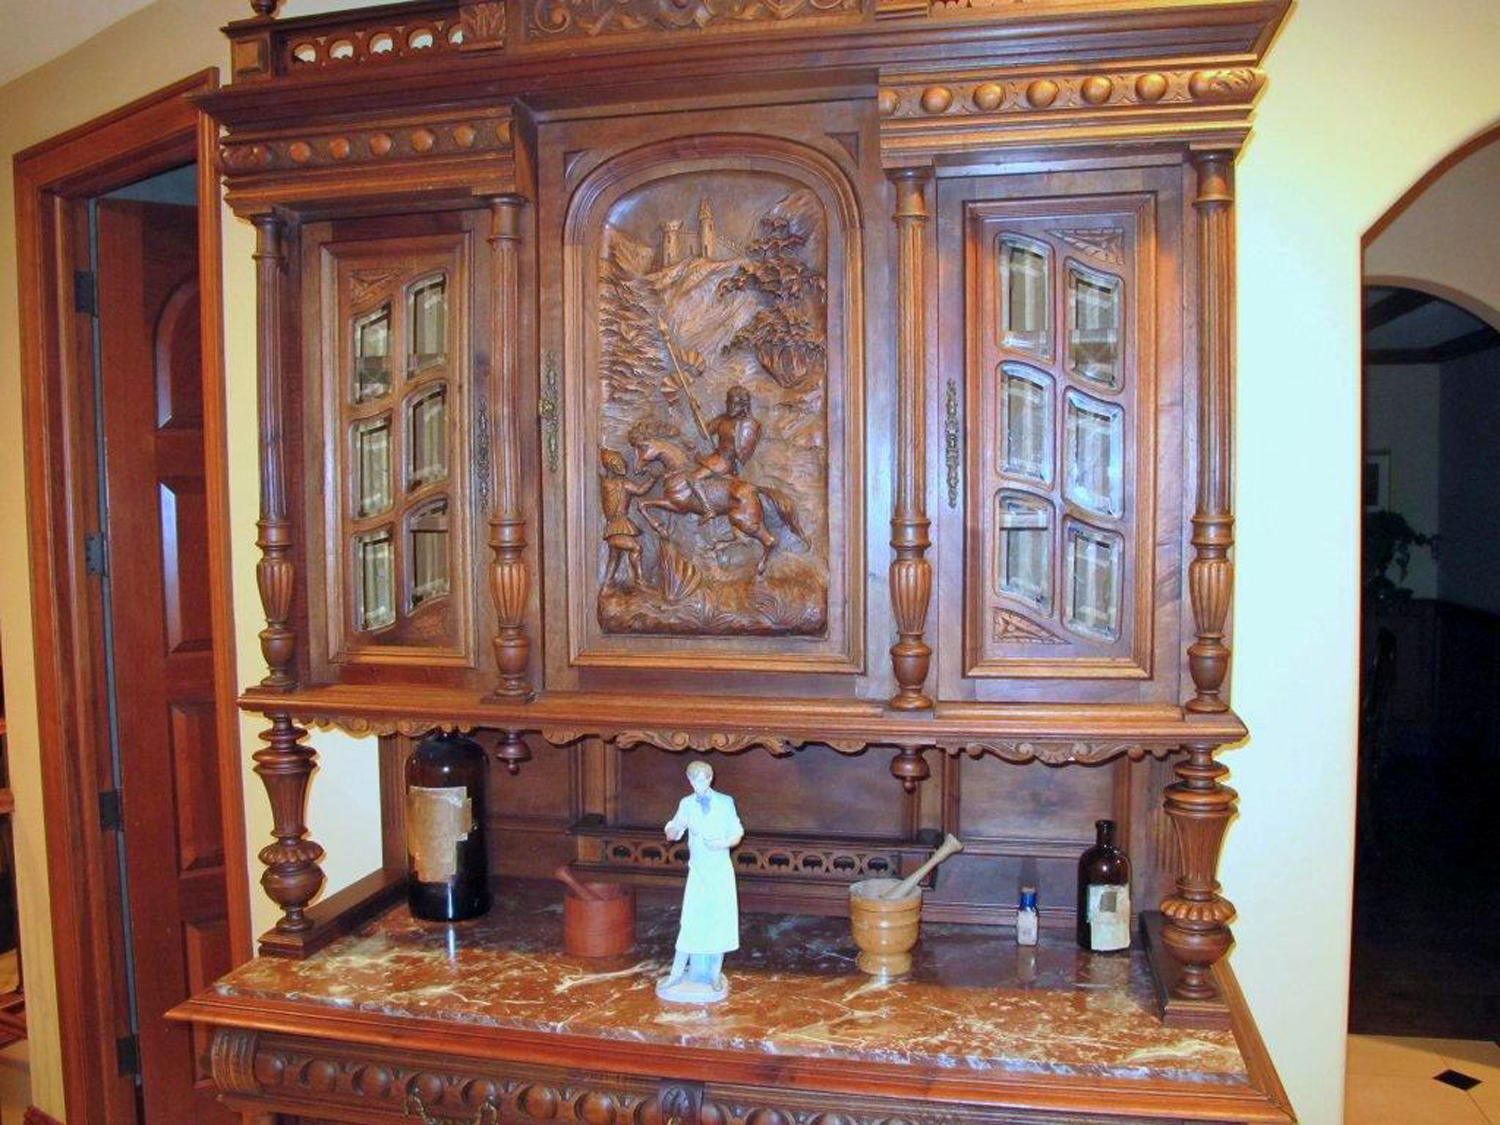 Antique buffet inspired Renaissance mural